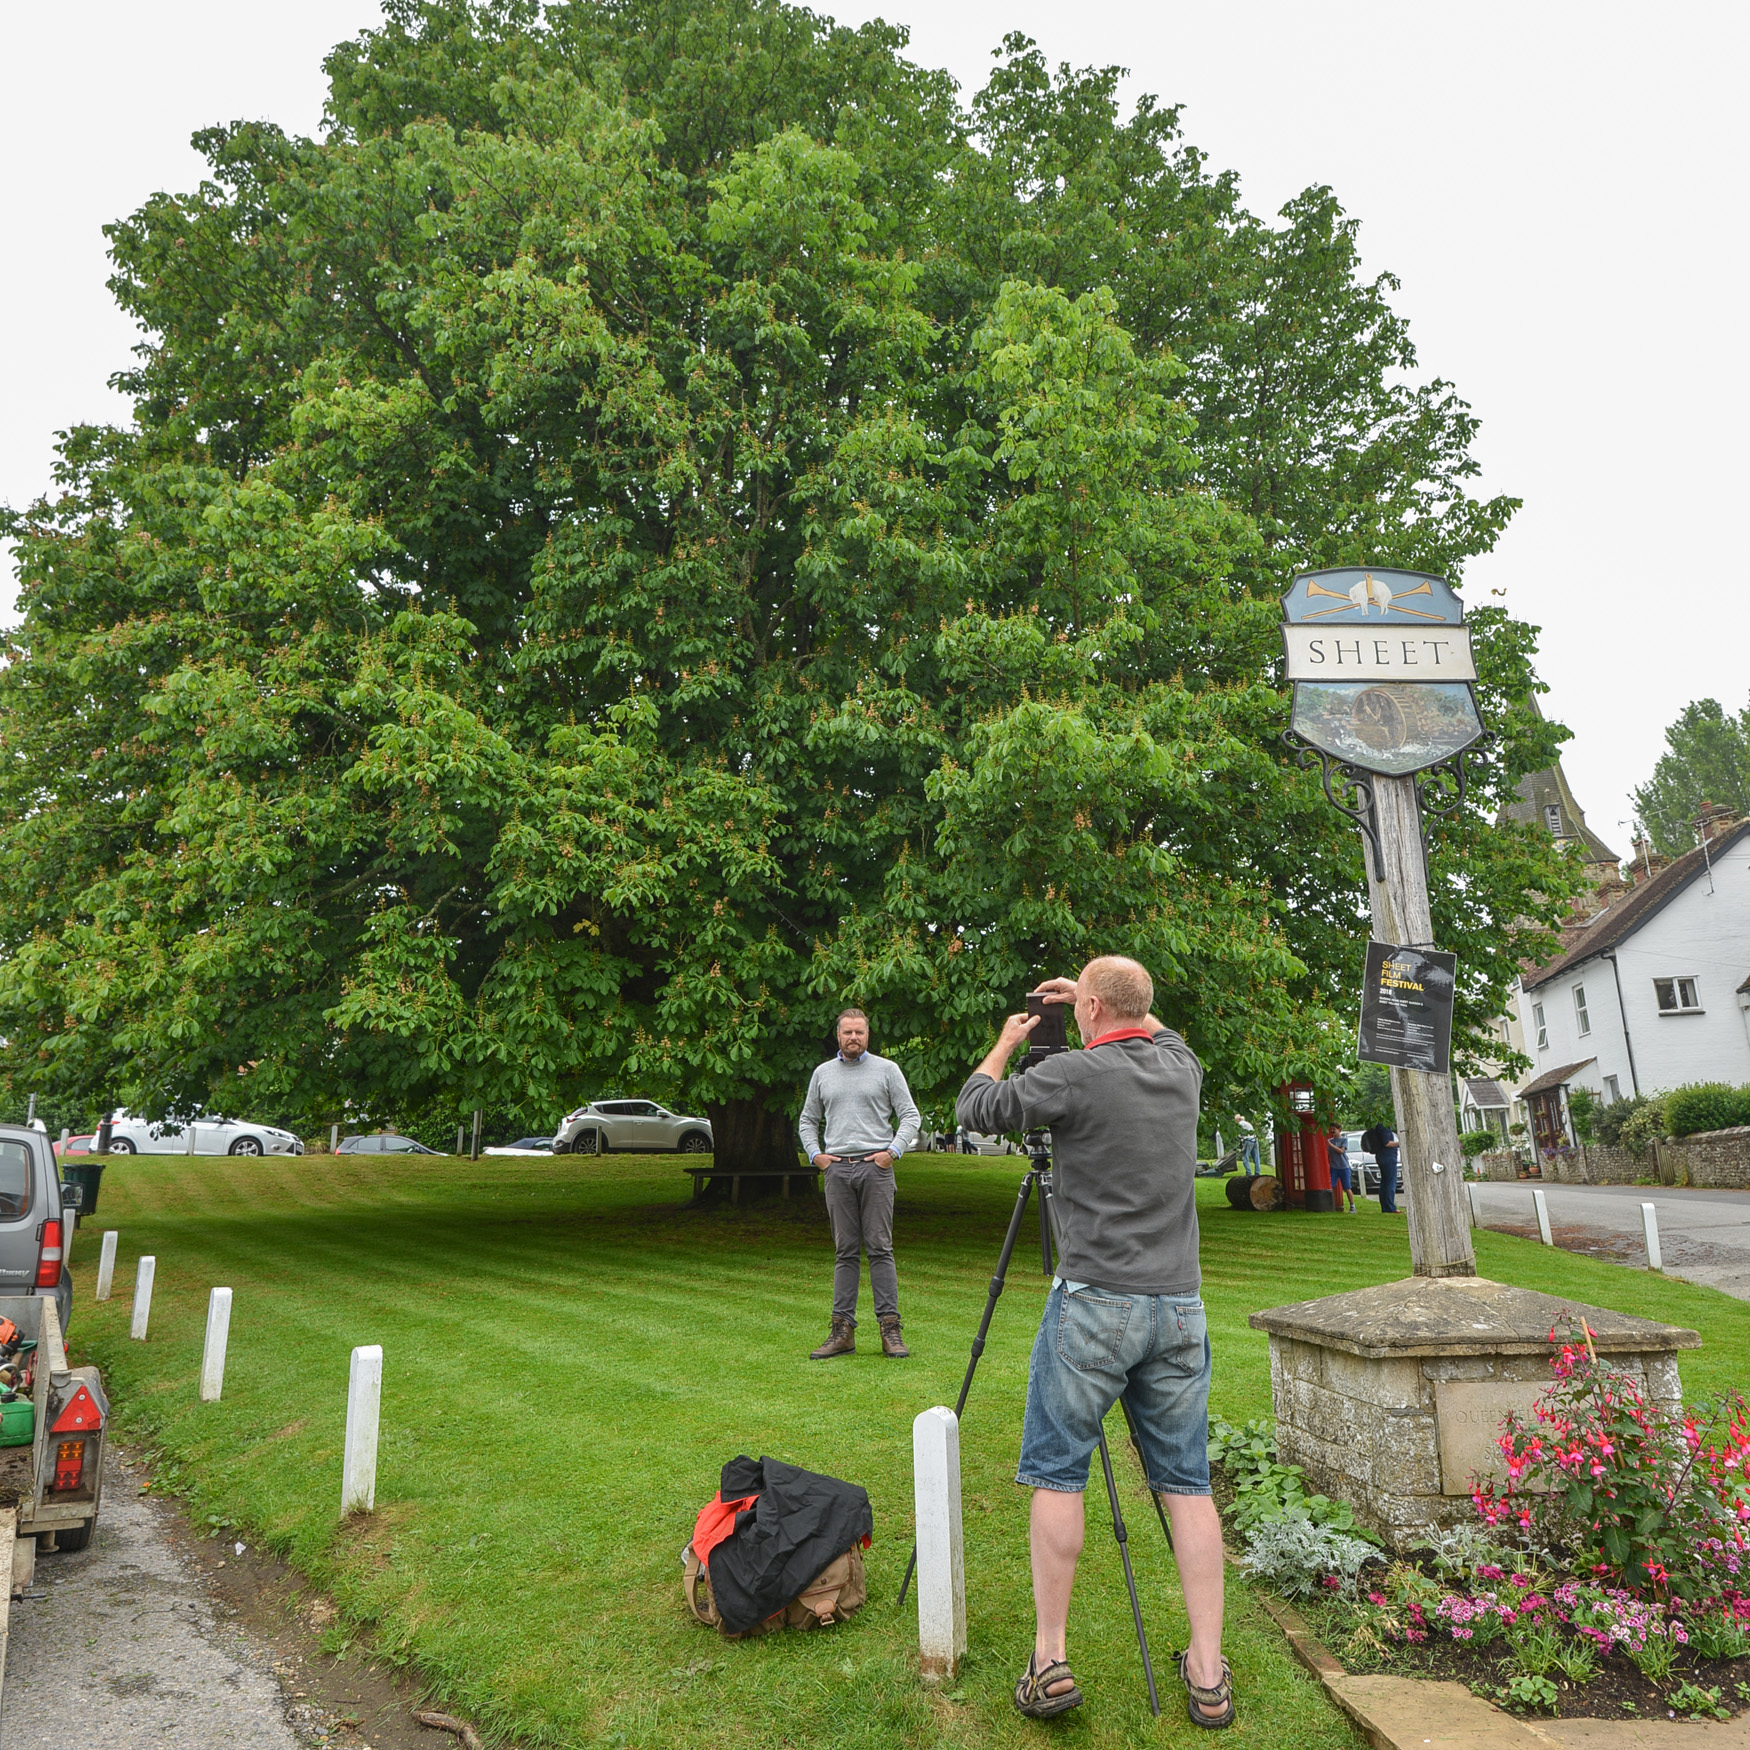 Rob making a large format portrait of Nick Heasman in front of the horse chestnut on Sheet green.